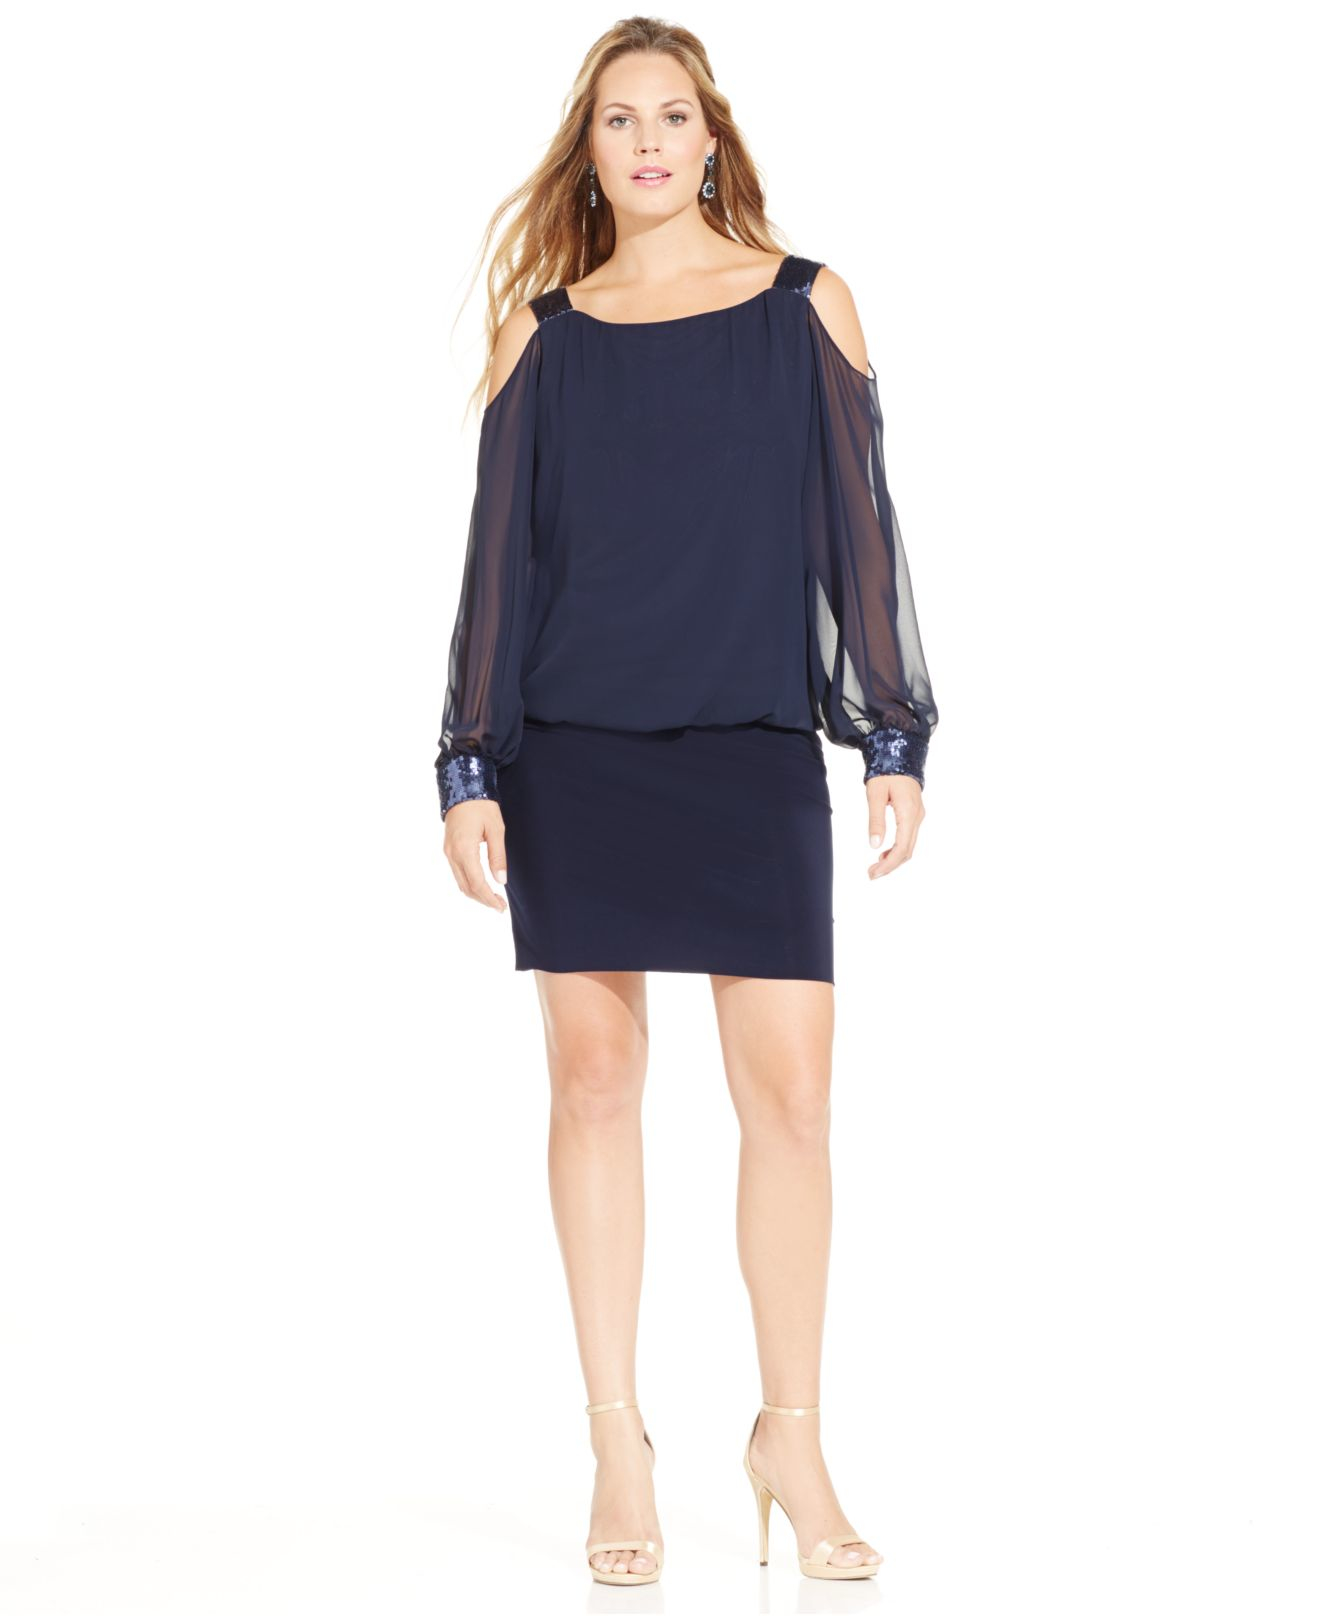 Blouson dress images